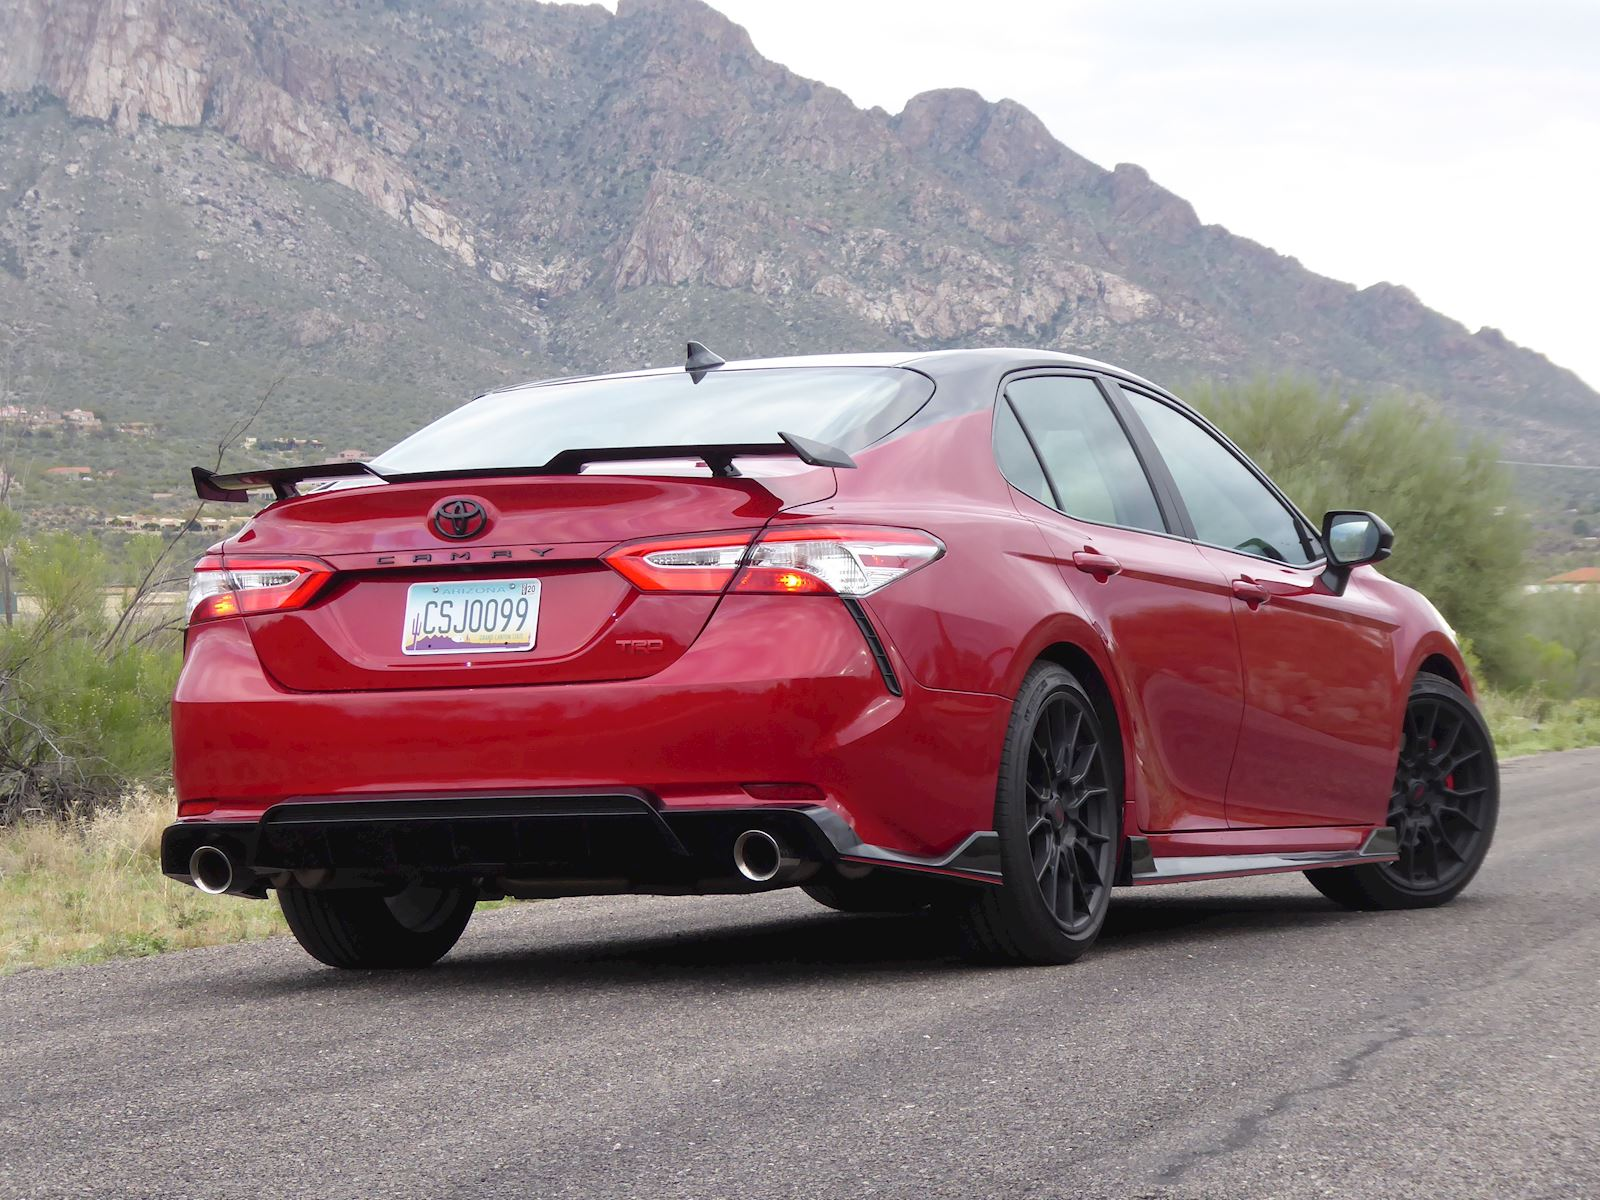 2020 Toyota Camry TRD rear view